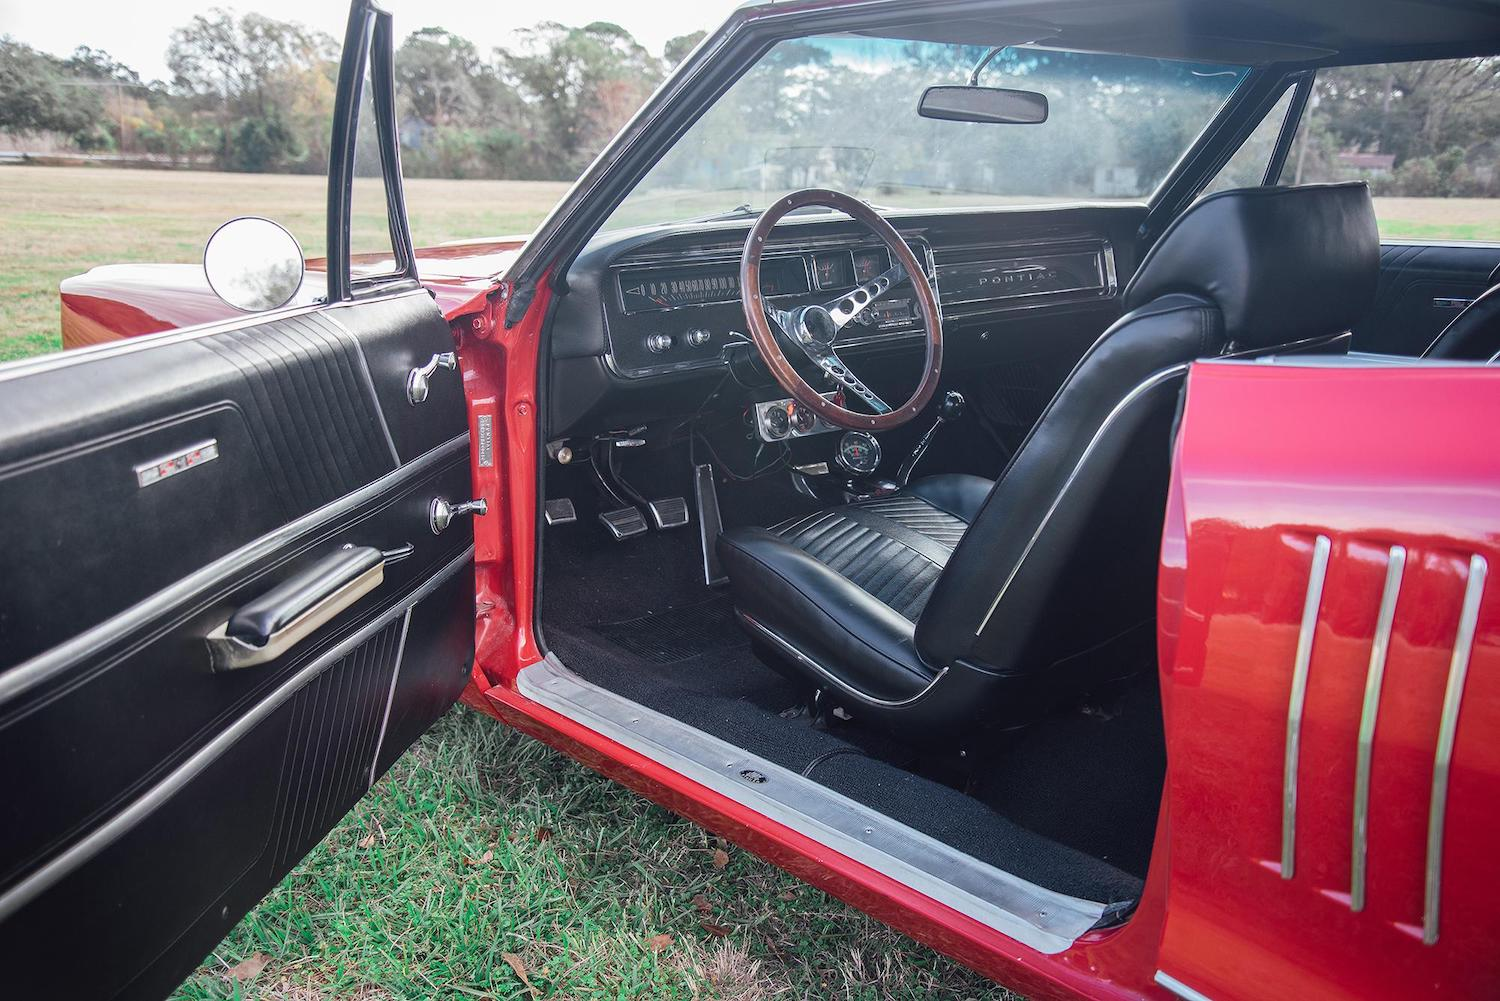 1966 red pontiac 2 plus 2 interior open door front